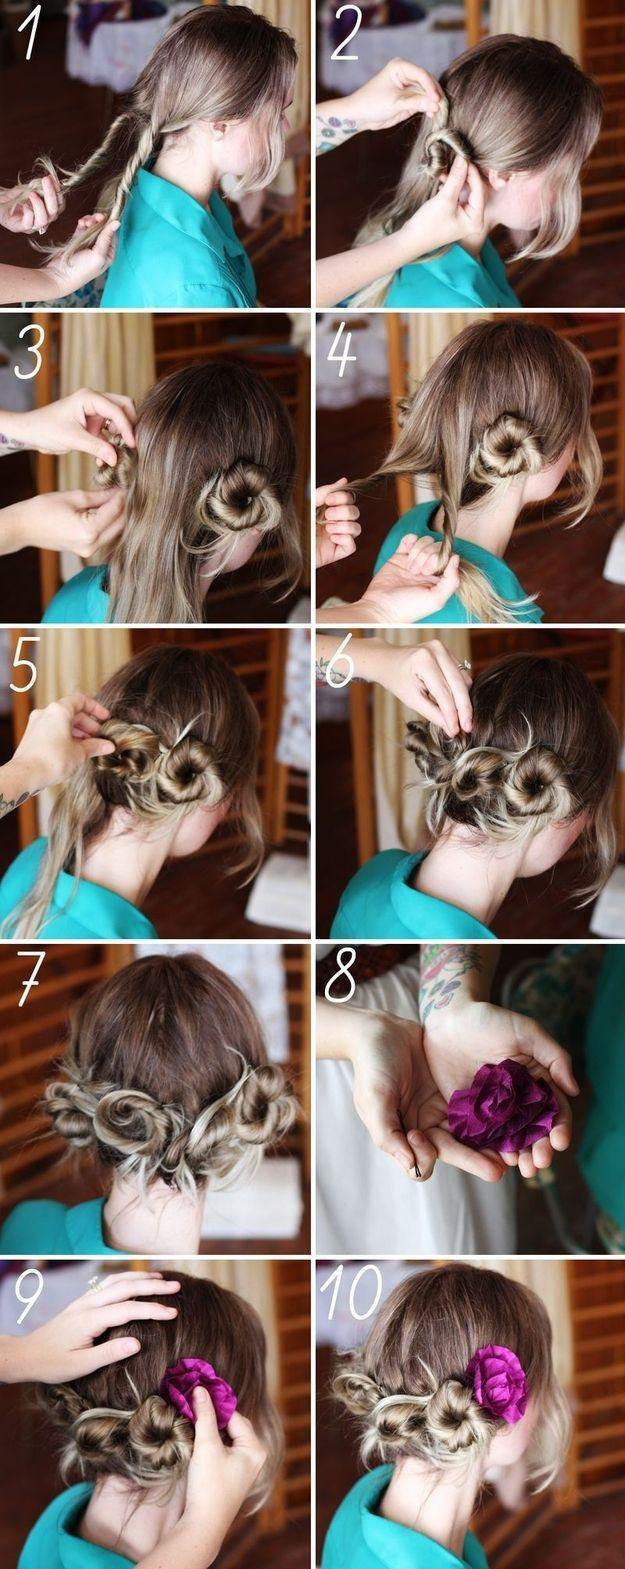 creative_hairstyles_that_you_can_easily_do_at_home_640_high_22